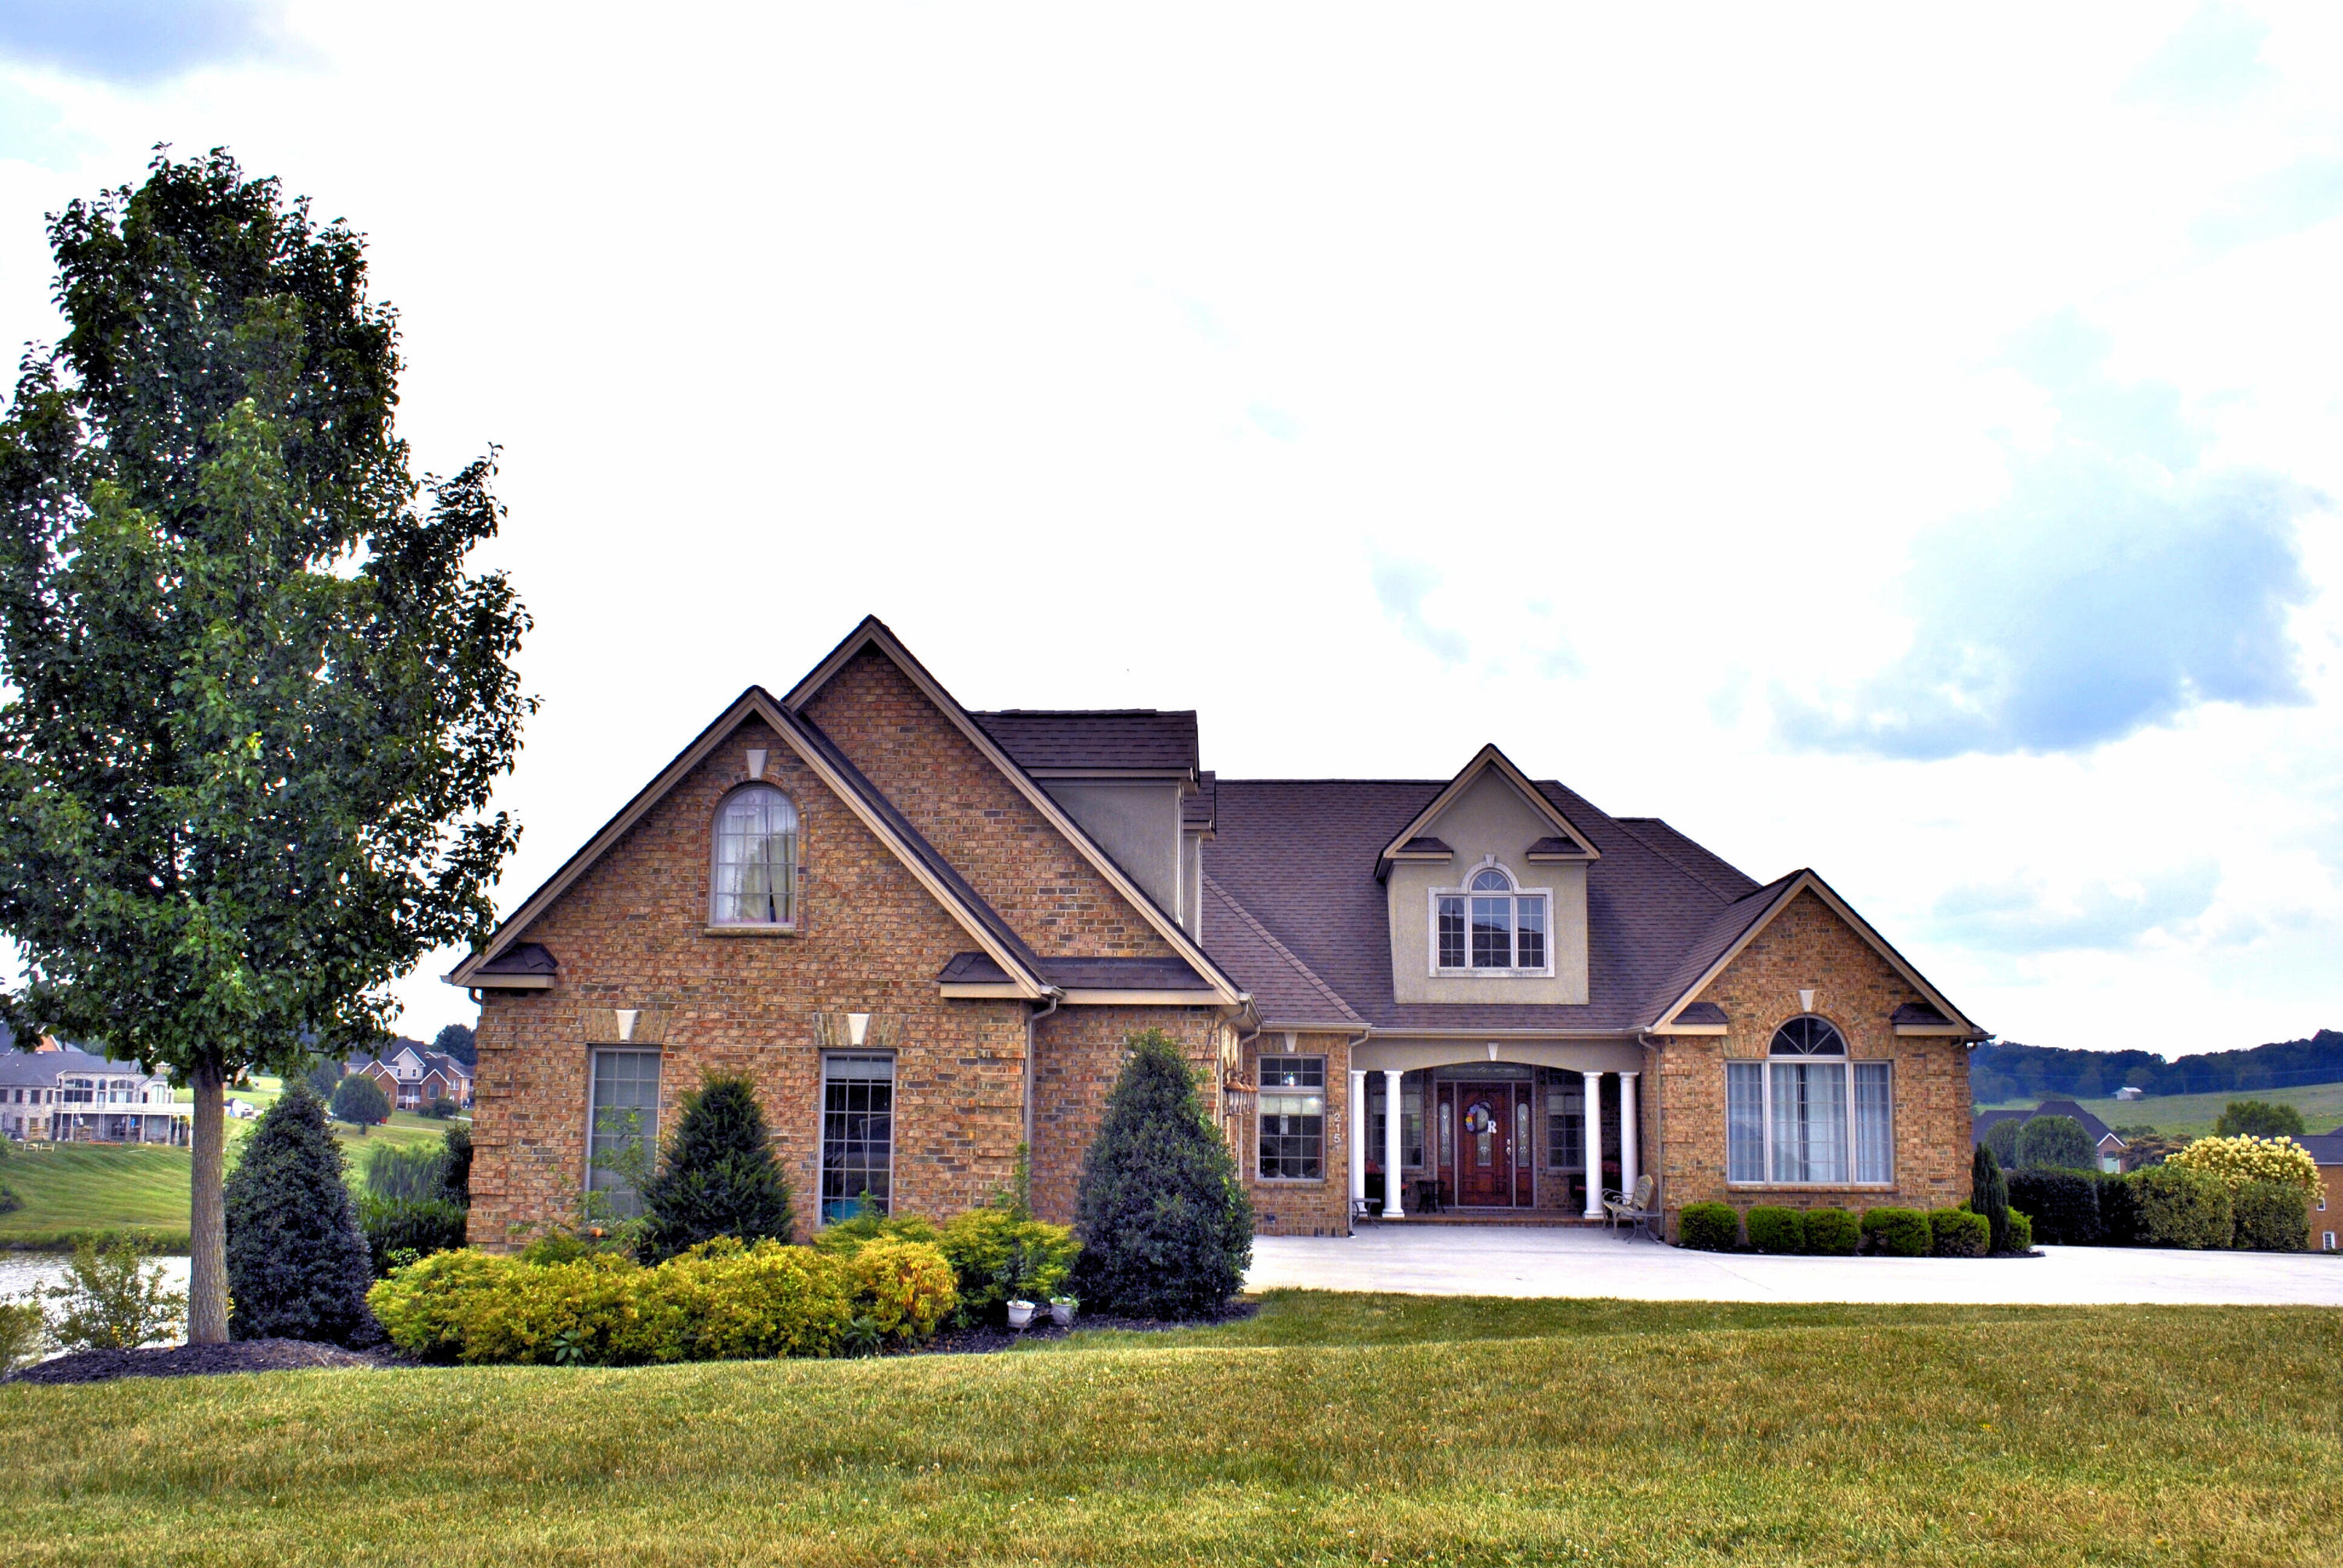 Residential for Sale at 2151 Peakland Way Christiansburg, Virginia 24073 United States